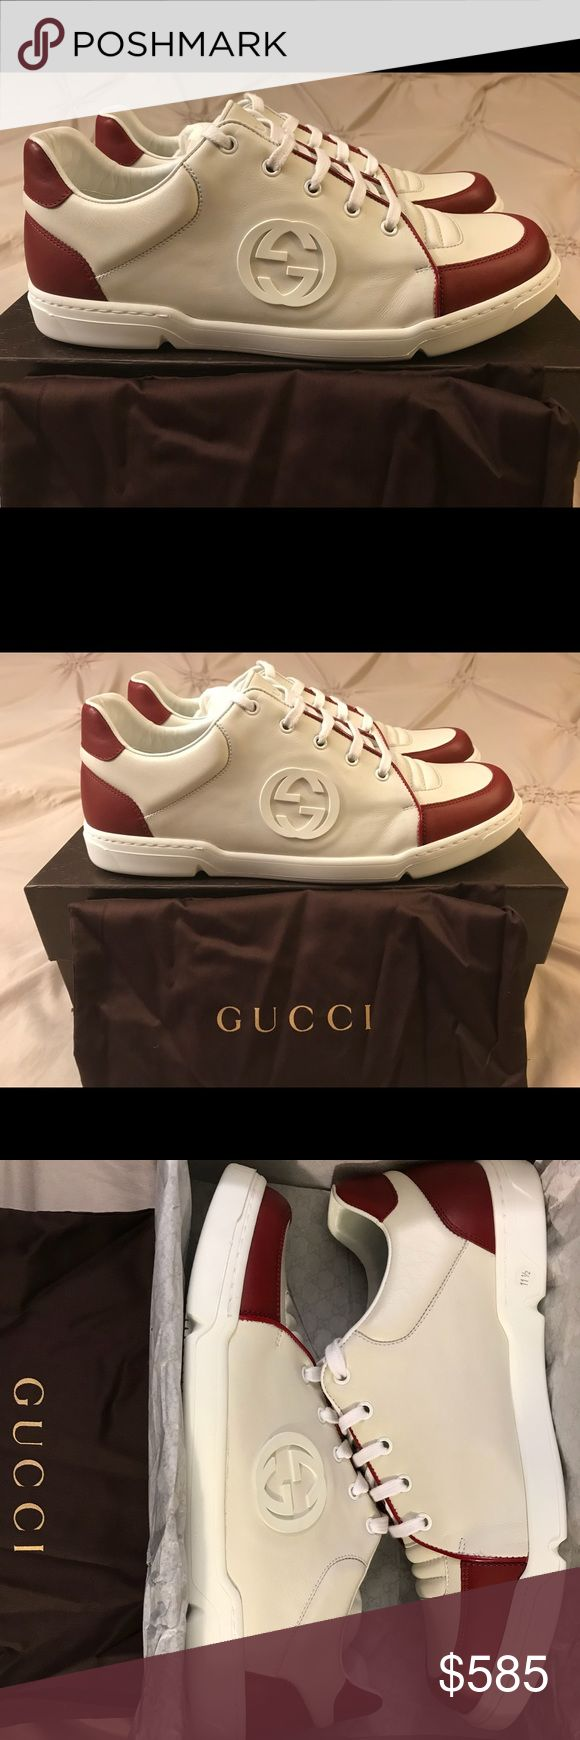 New Gucci GG SoHo Sneakers New with Tags Brand: Gucci Style: Interlocking GG / SoHo Type: Shoes / Sneakers / Runners Colors: White / Red / Cream Retail: $635 Made in Italy 100% AUTHENTIC Sizes available: 12.5 & 13 ( 11.5 & 12 Gucci ) Gucci Shoes Sneakers